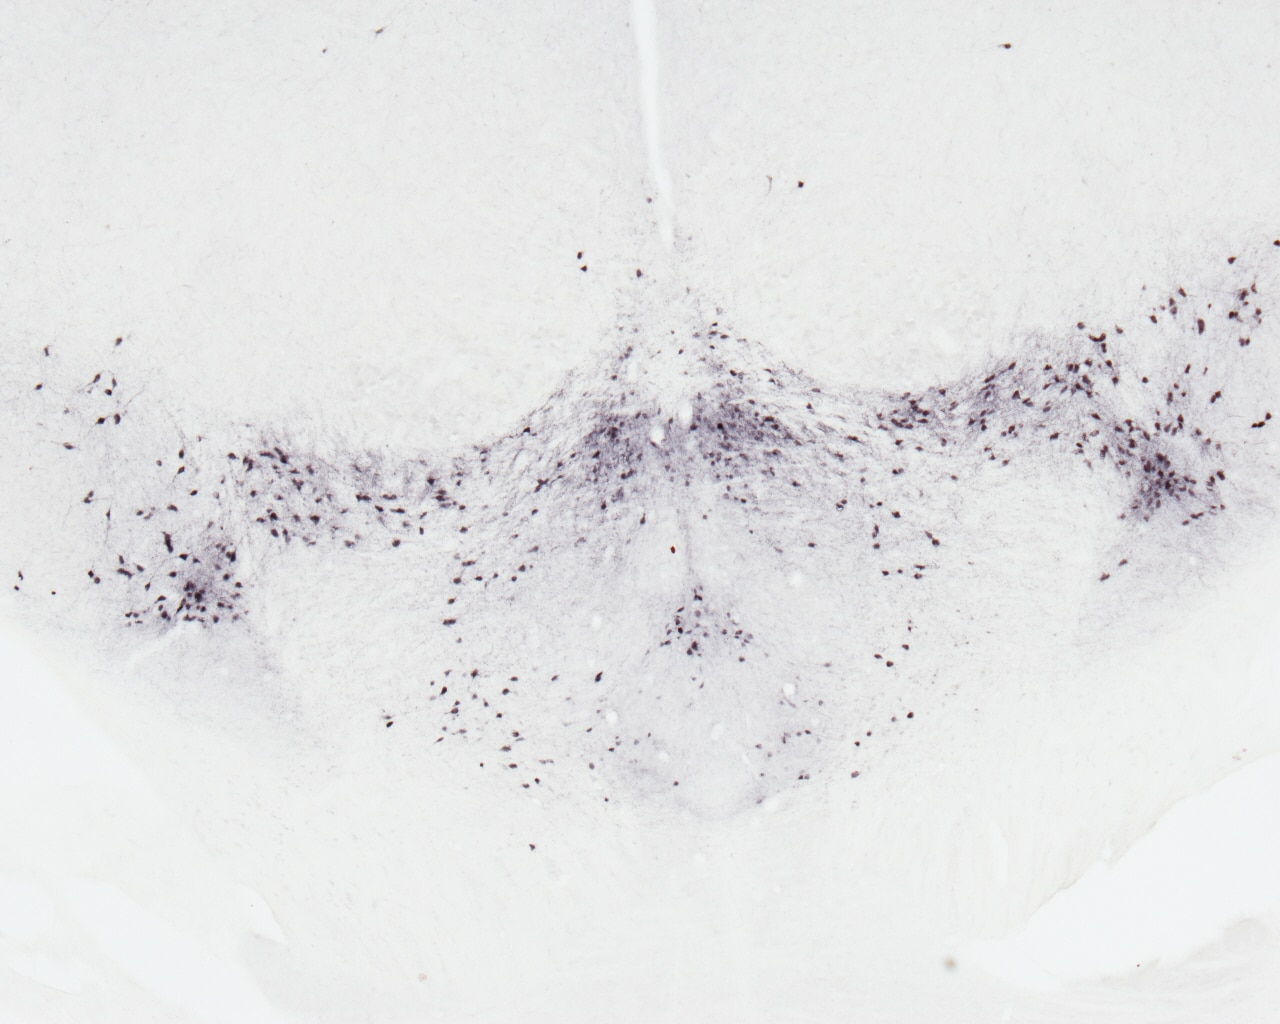 IHC staining of mouse brain using 10166-1-AP